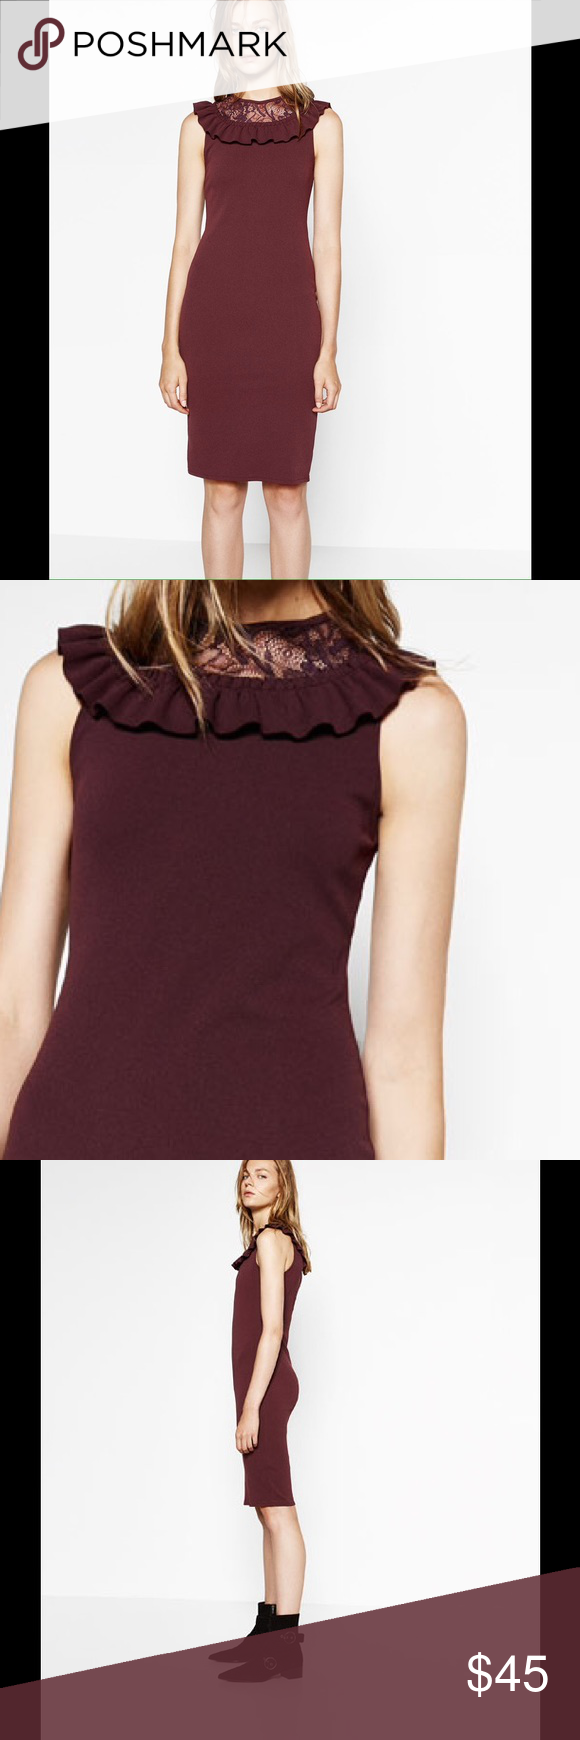 4d39a44a ZARA BURGUNDY DRESS WITH NECK RUFFLE Round neck sleeveless tube dress with  lace and frill. Back fastening.. 97% polyester, 3%elastane Zara Dresses Midi